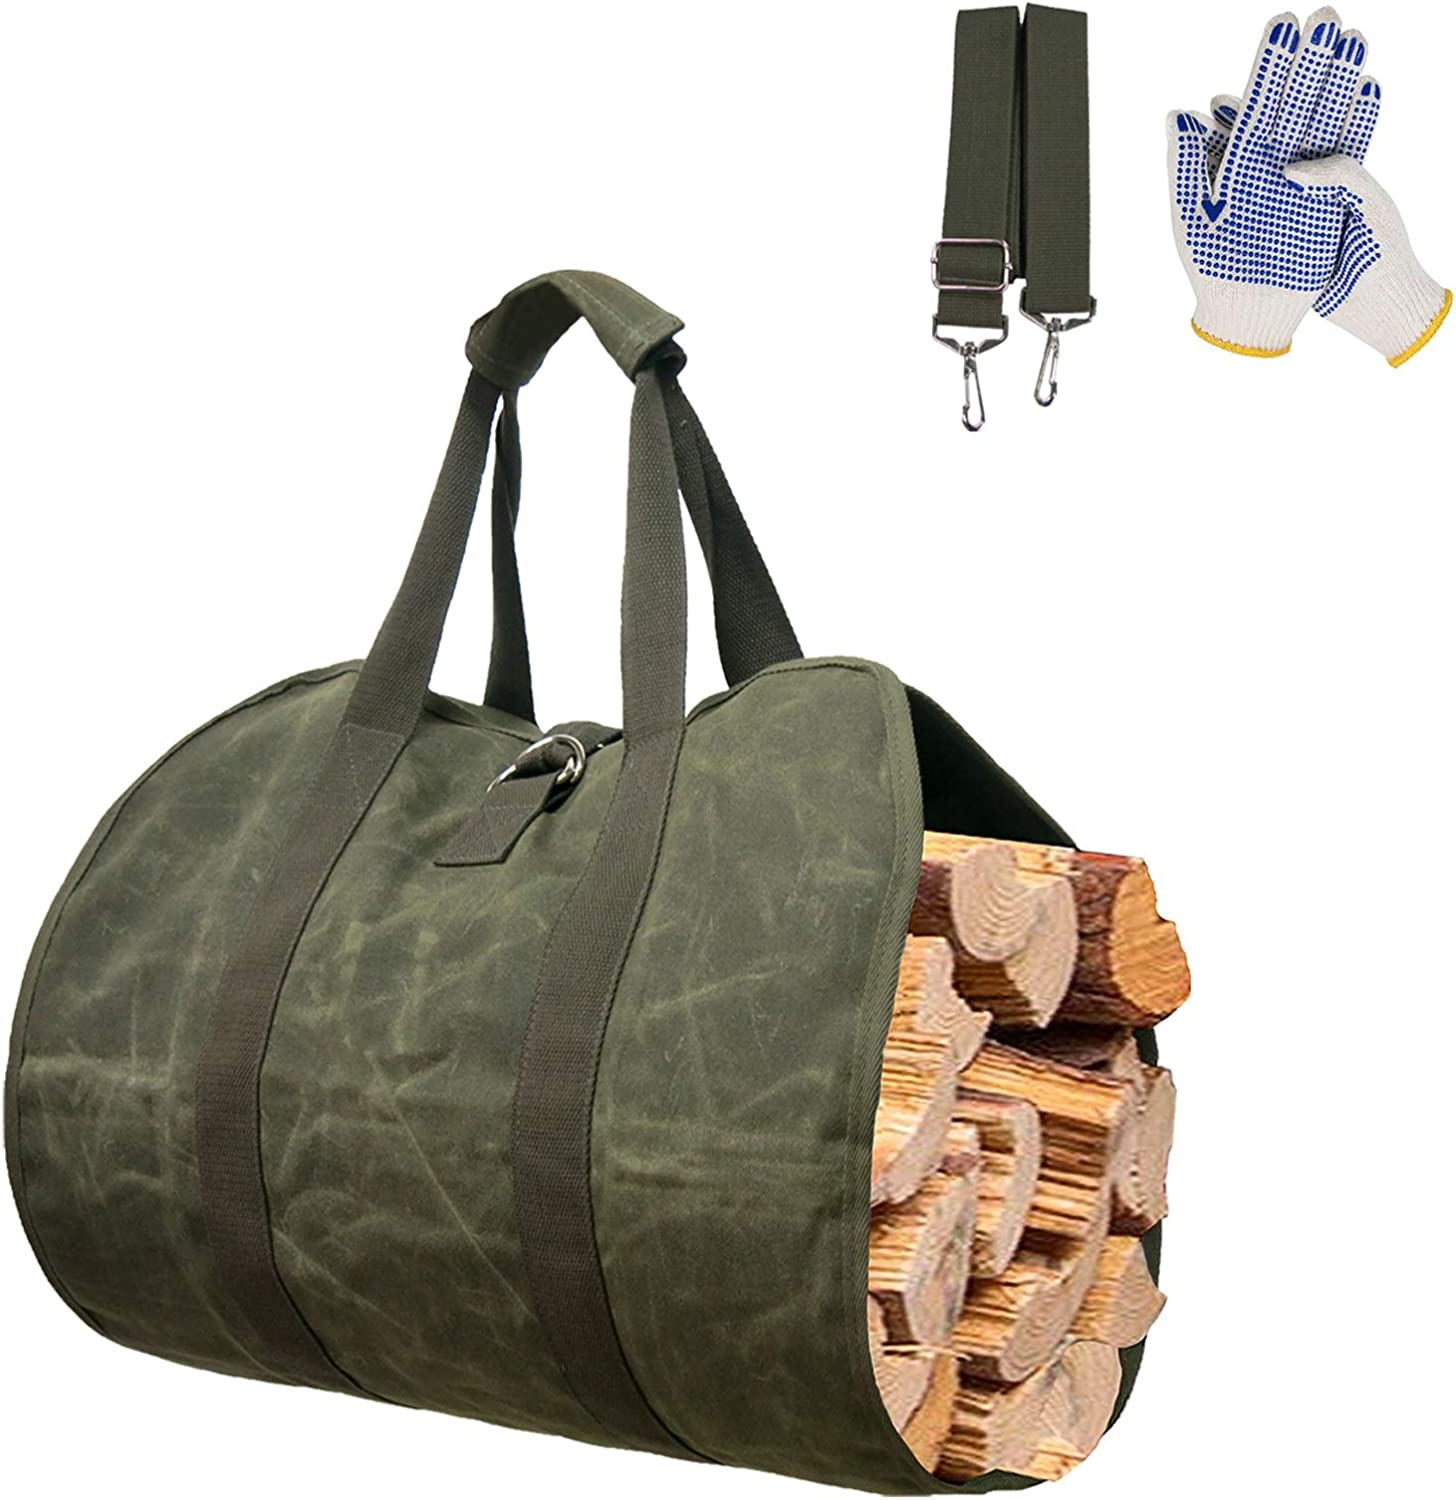 National All items in the store products Fireplace Carrier Waxed Canvas Log Outdoor Bag Tote